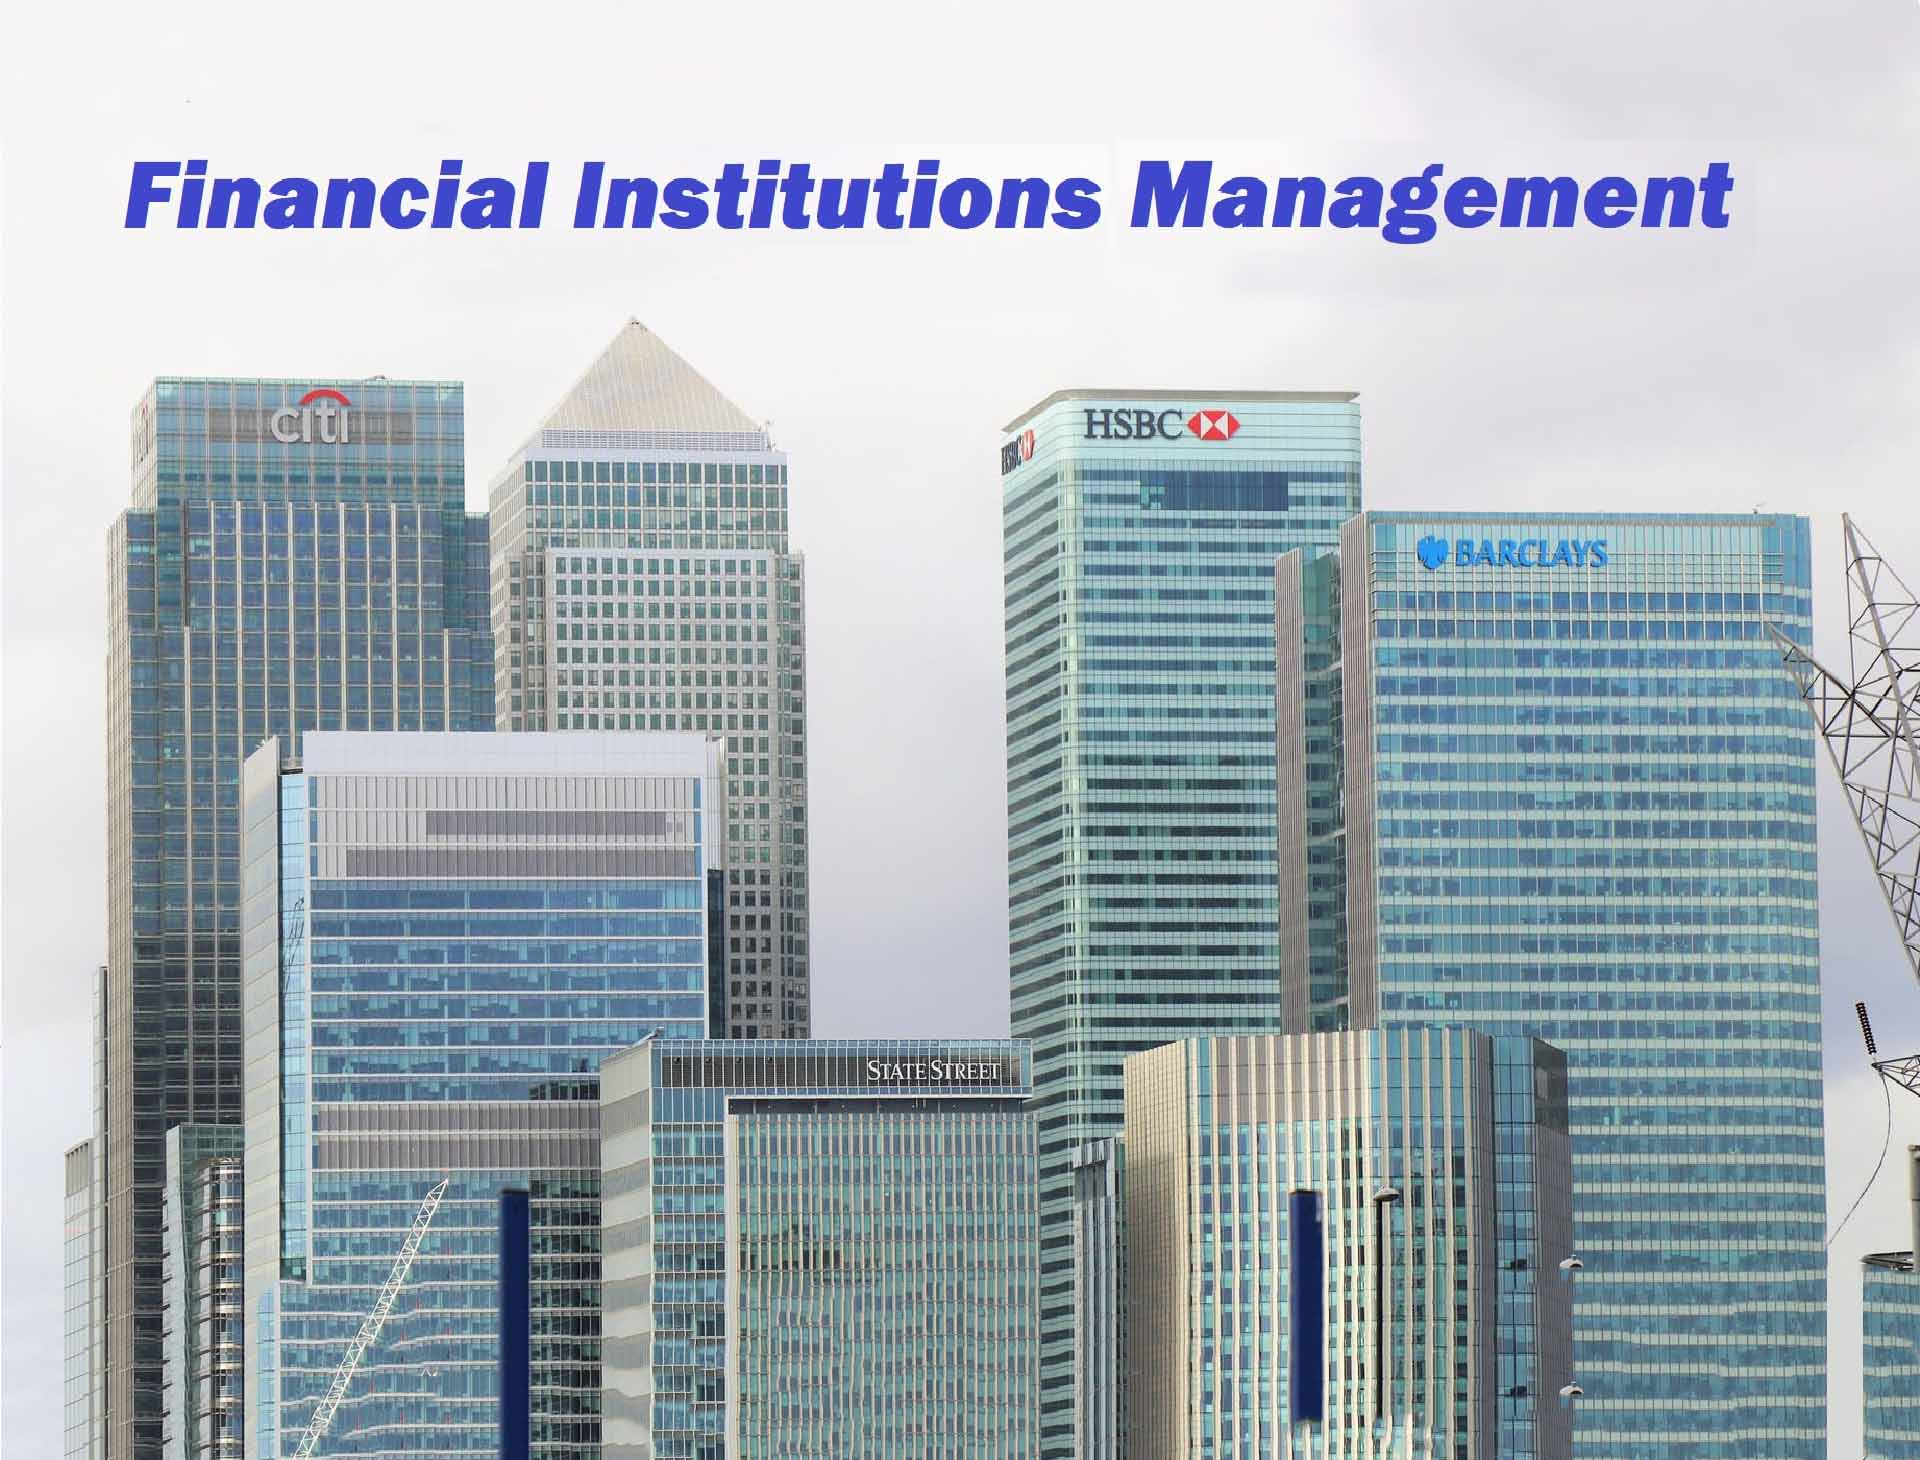 金融機構管理Financial Institutions Management